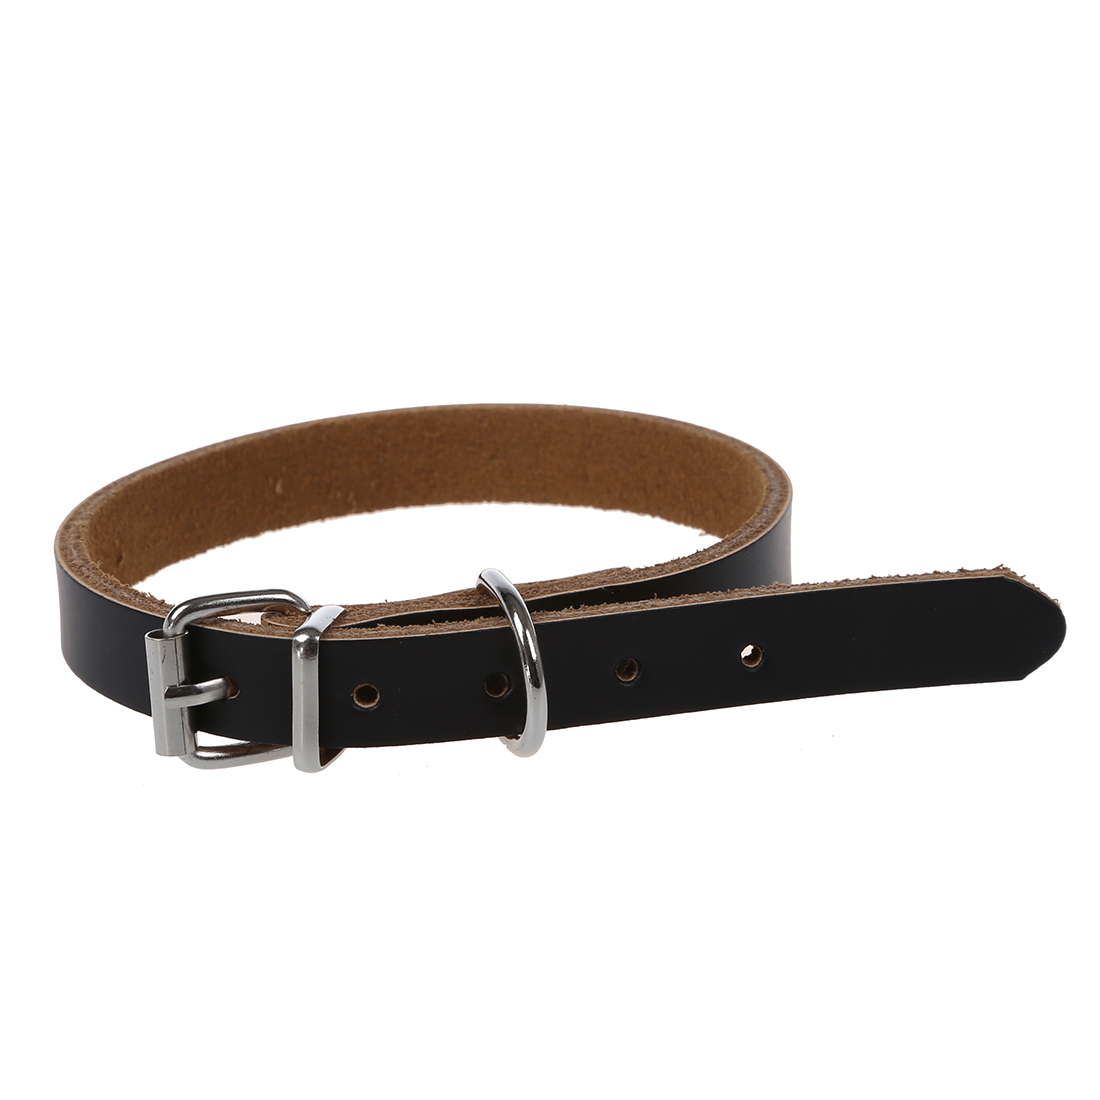 Leather collar for dogs cats puppy pet S Black